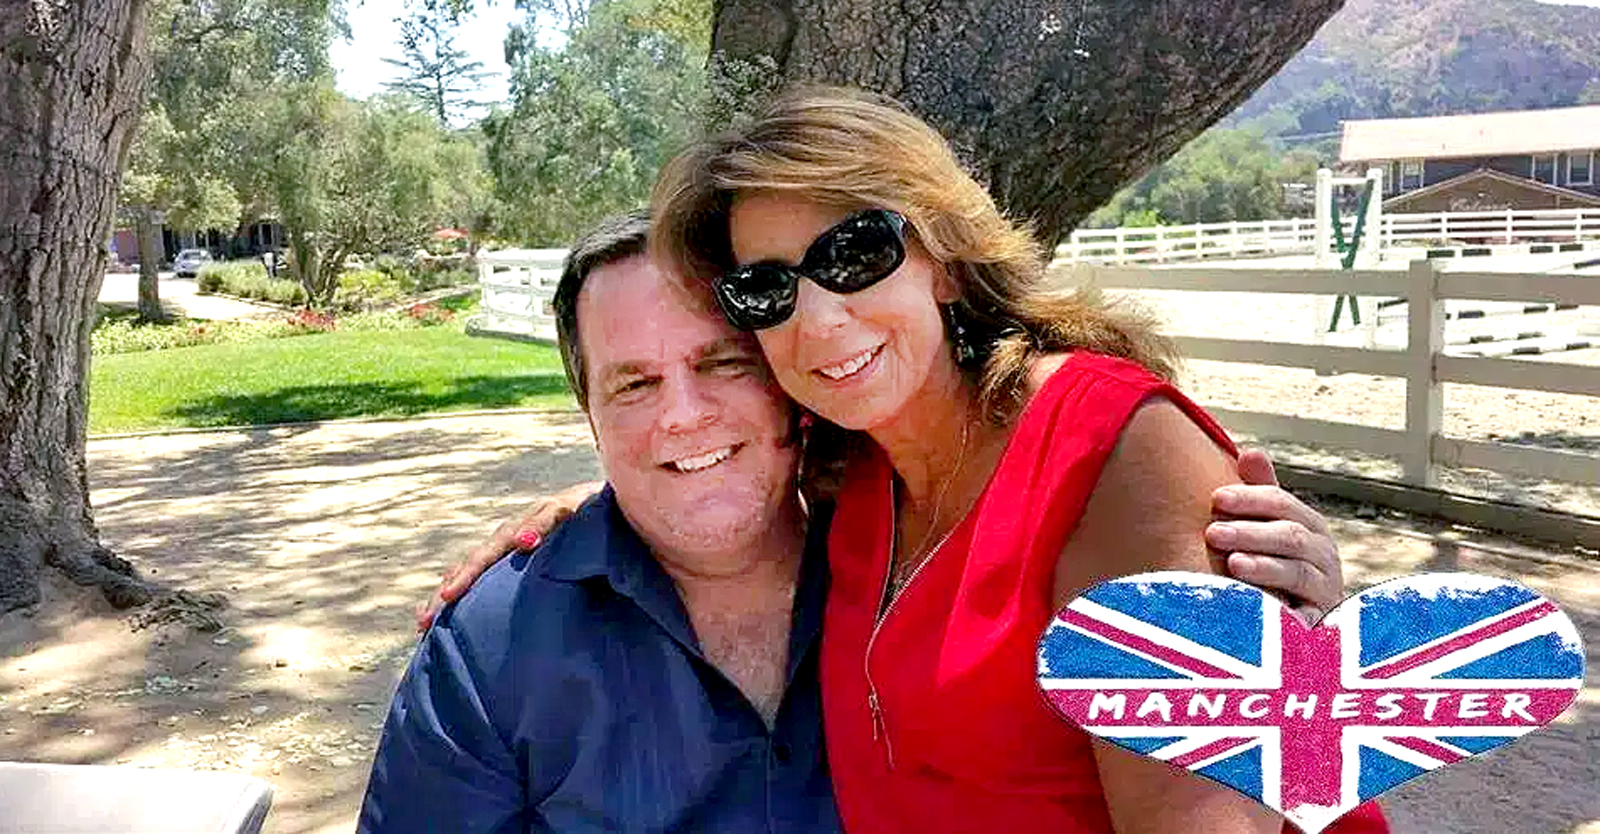 autopsy-shows-man-who-died-after-pfizer-shot-had-enlarged-heart,-coroner-says-vaccine-not-to-blame-—-wife-not-convinced